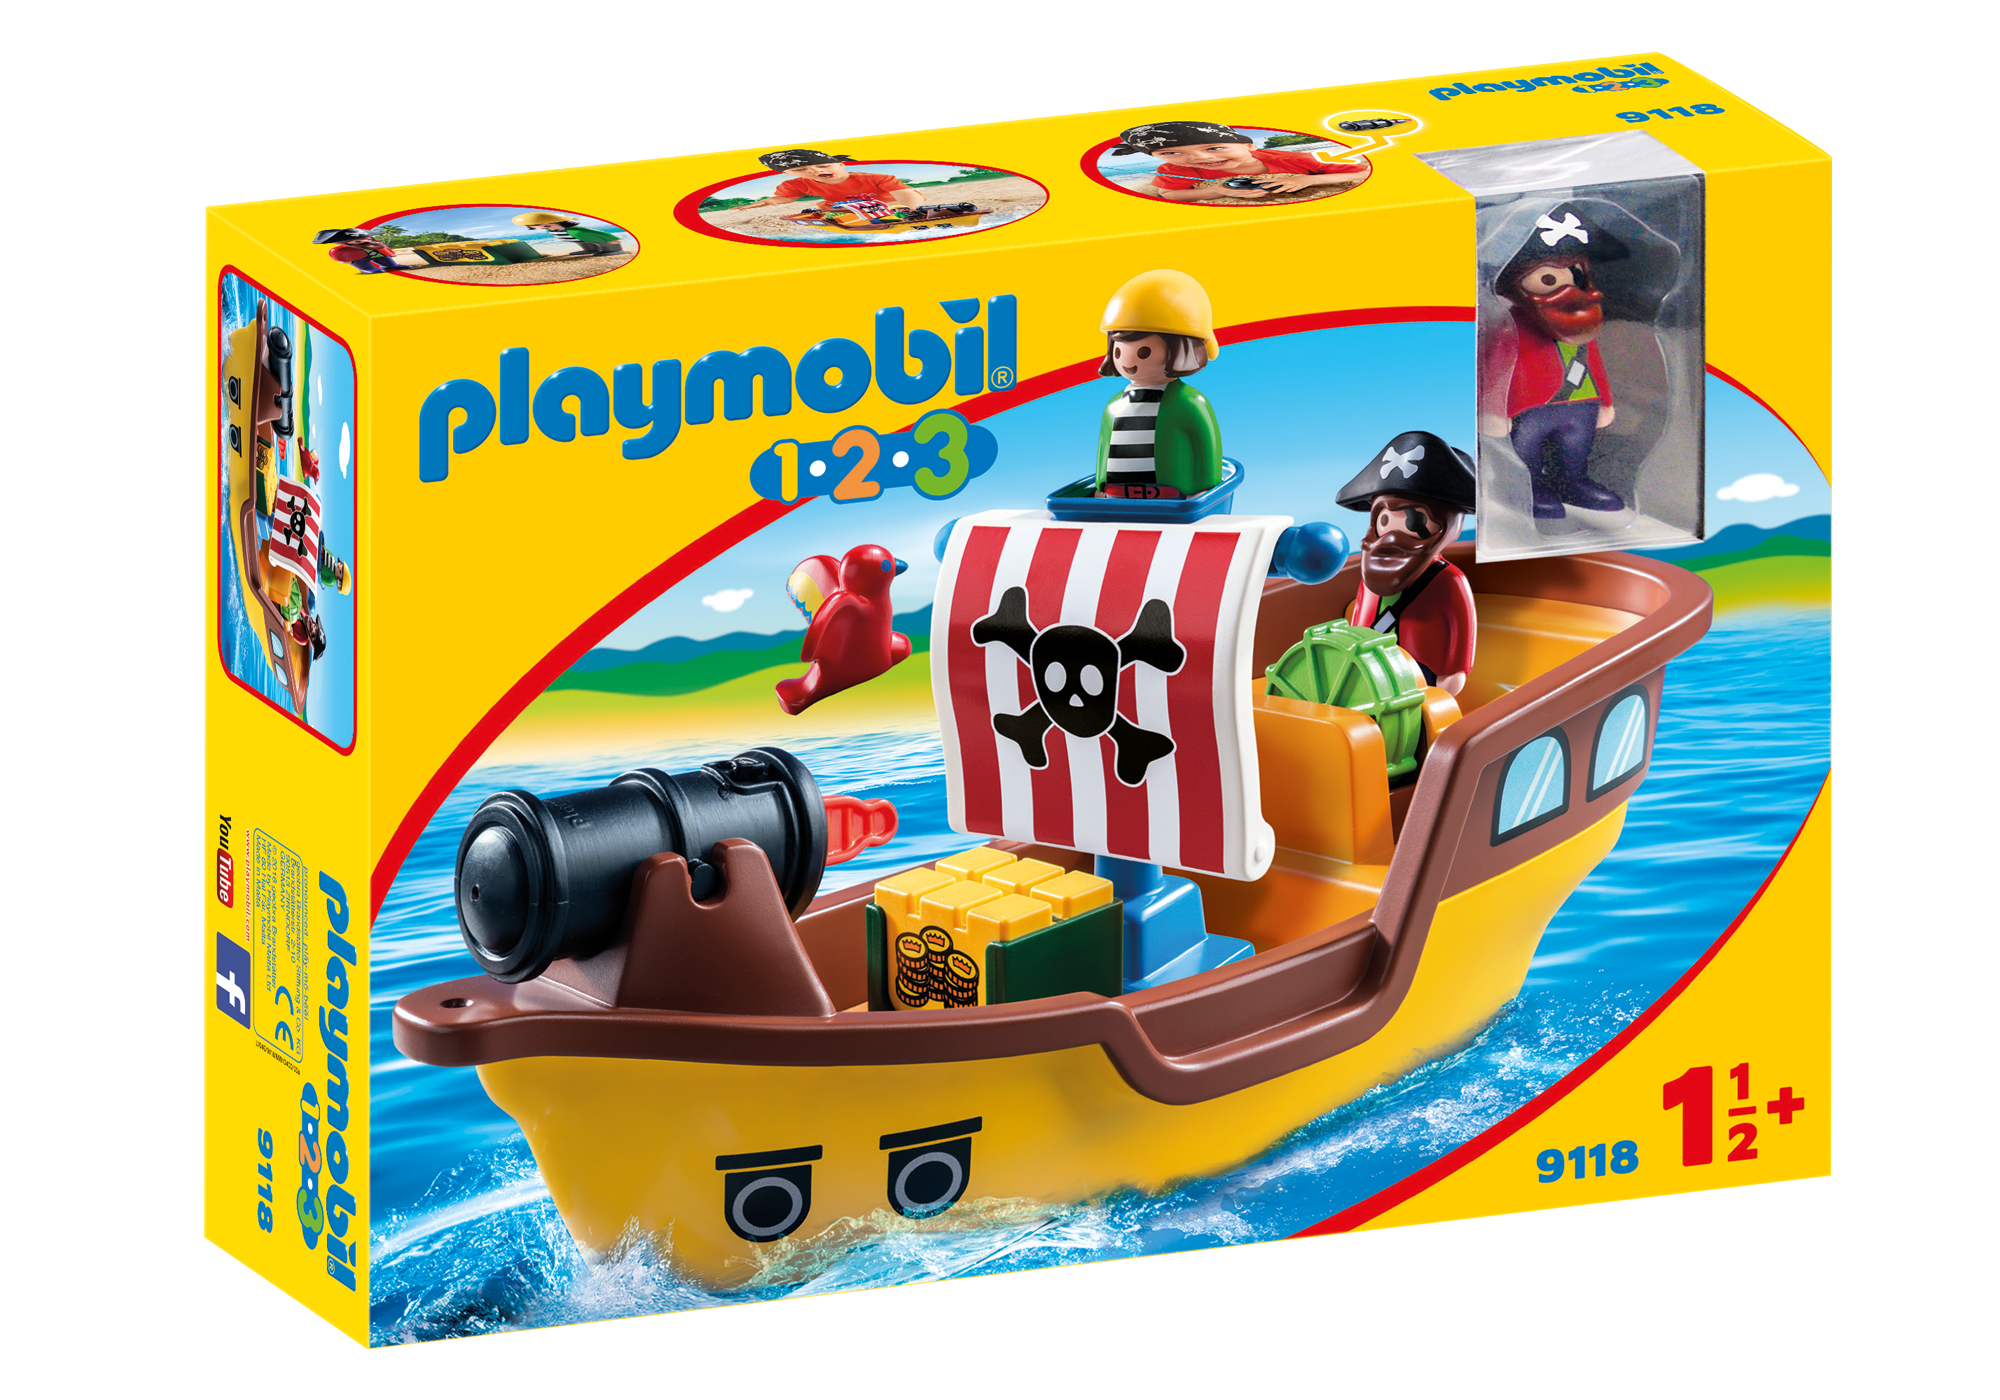 http://media.playmobil.com/i/playmobil/9118_product_box_front/1.2.3 Piratenschip